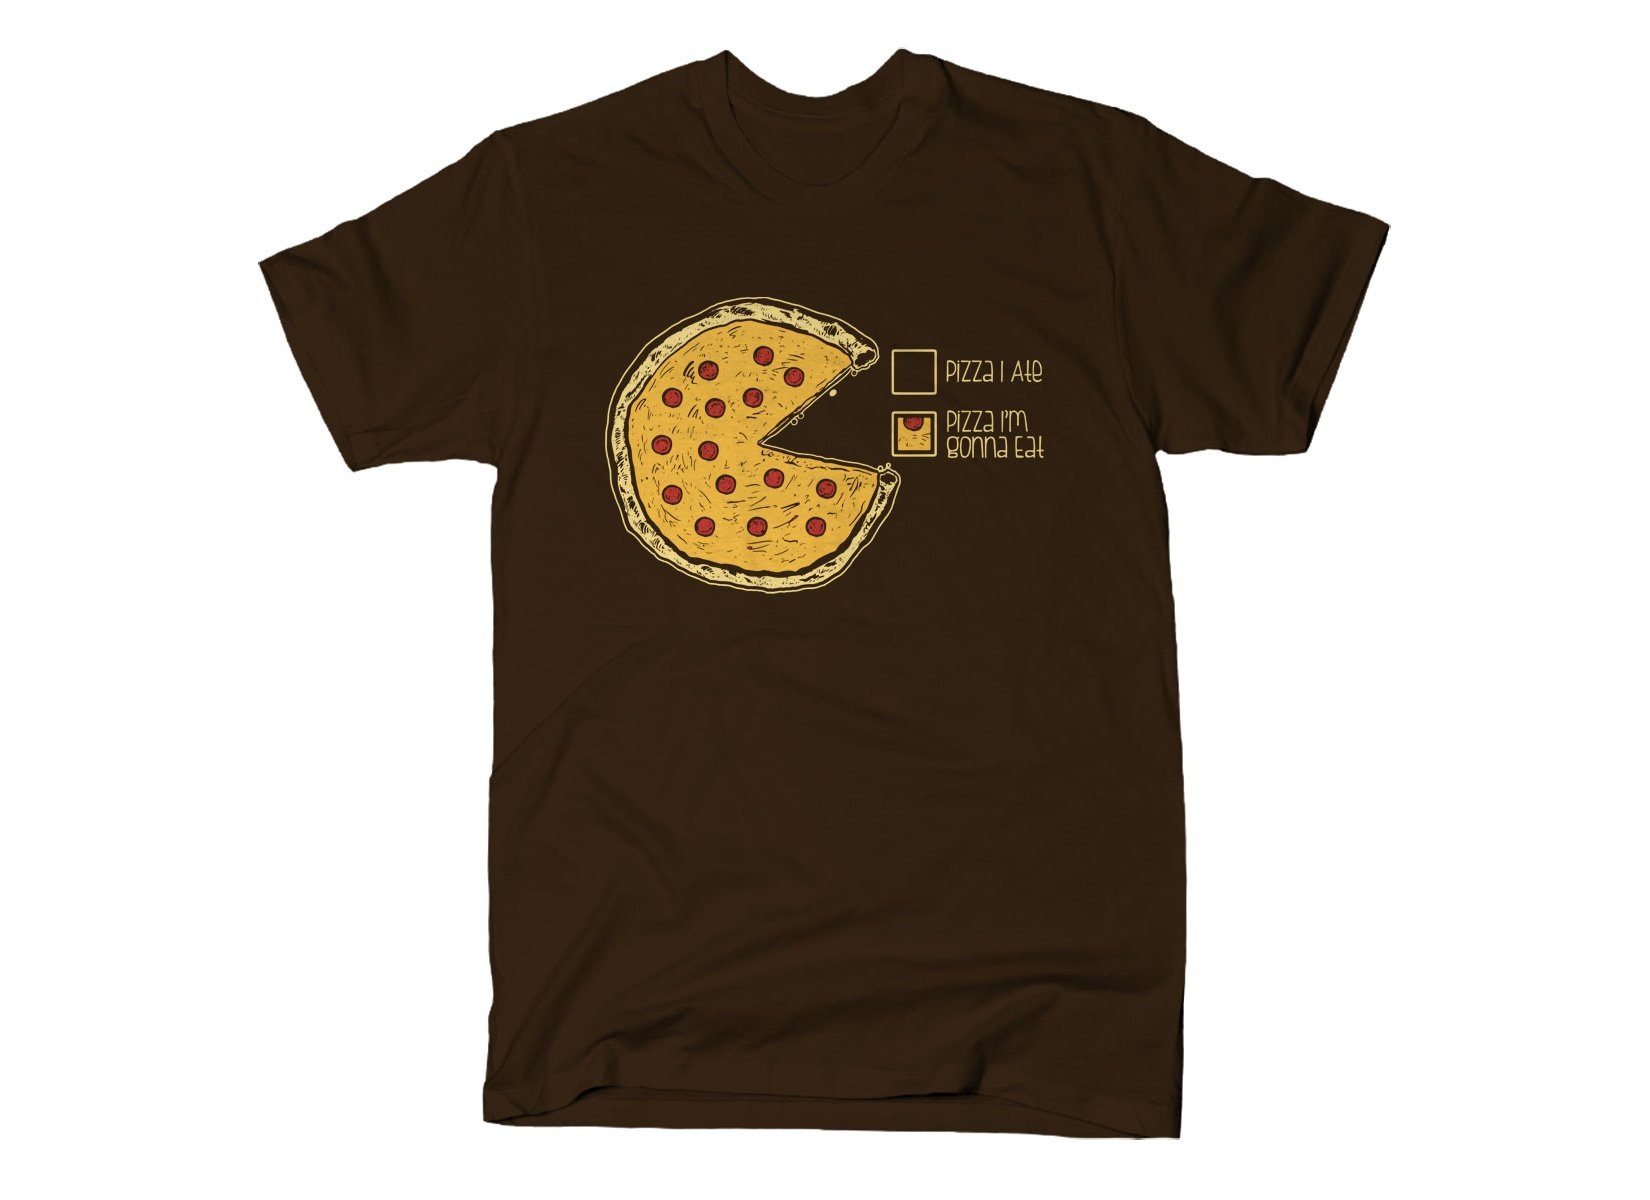 Pizza Pie Chart on Mens T-Shirt